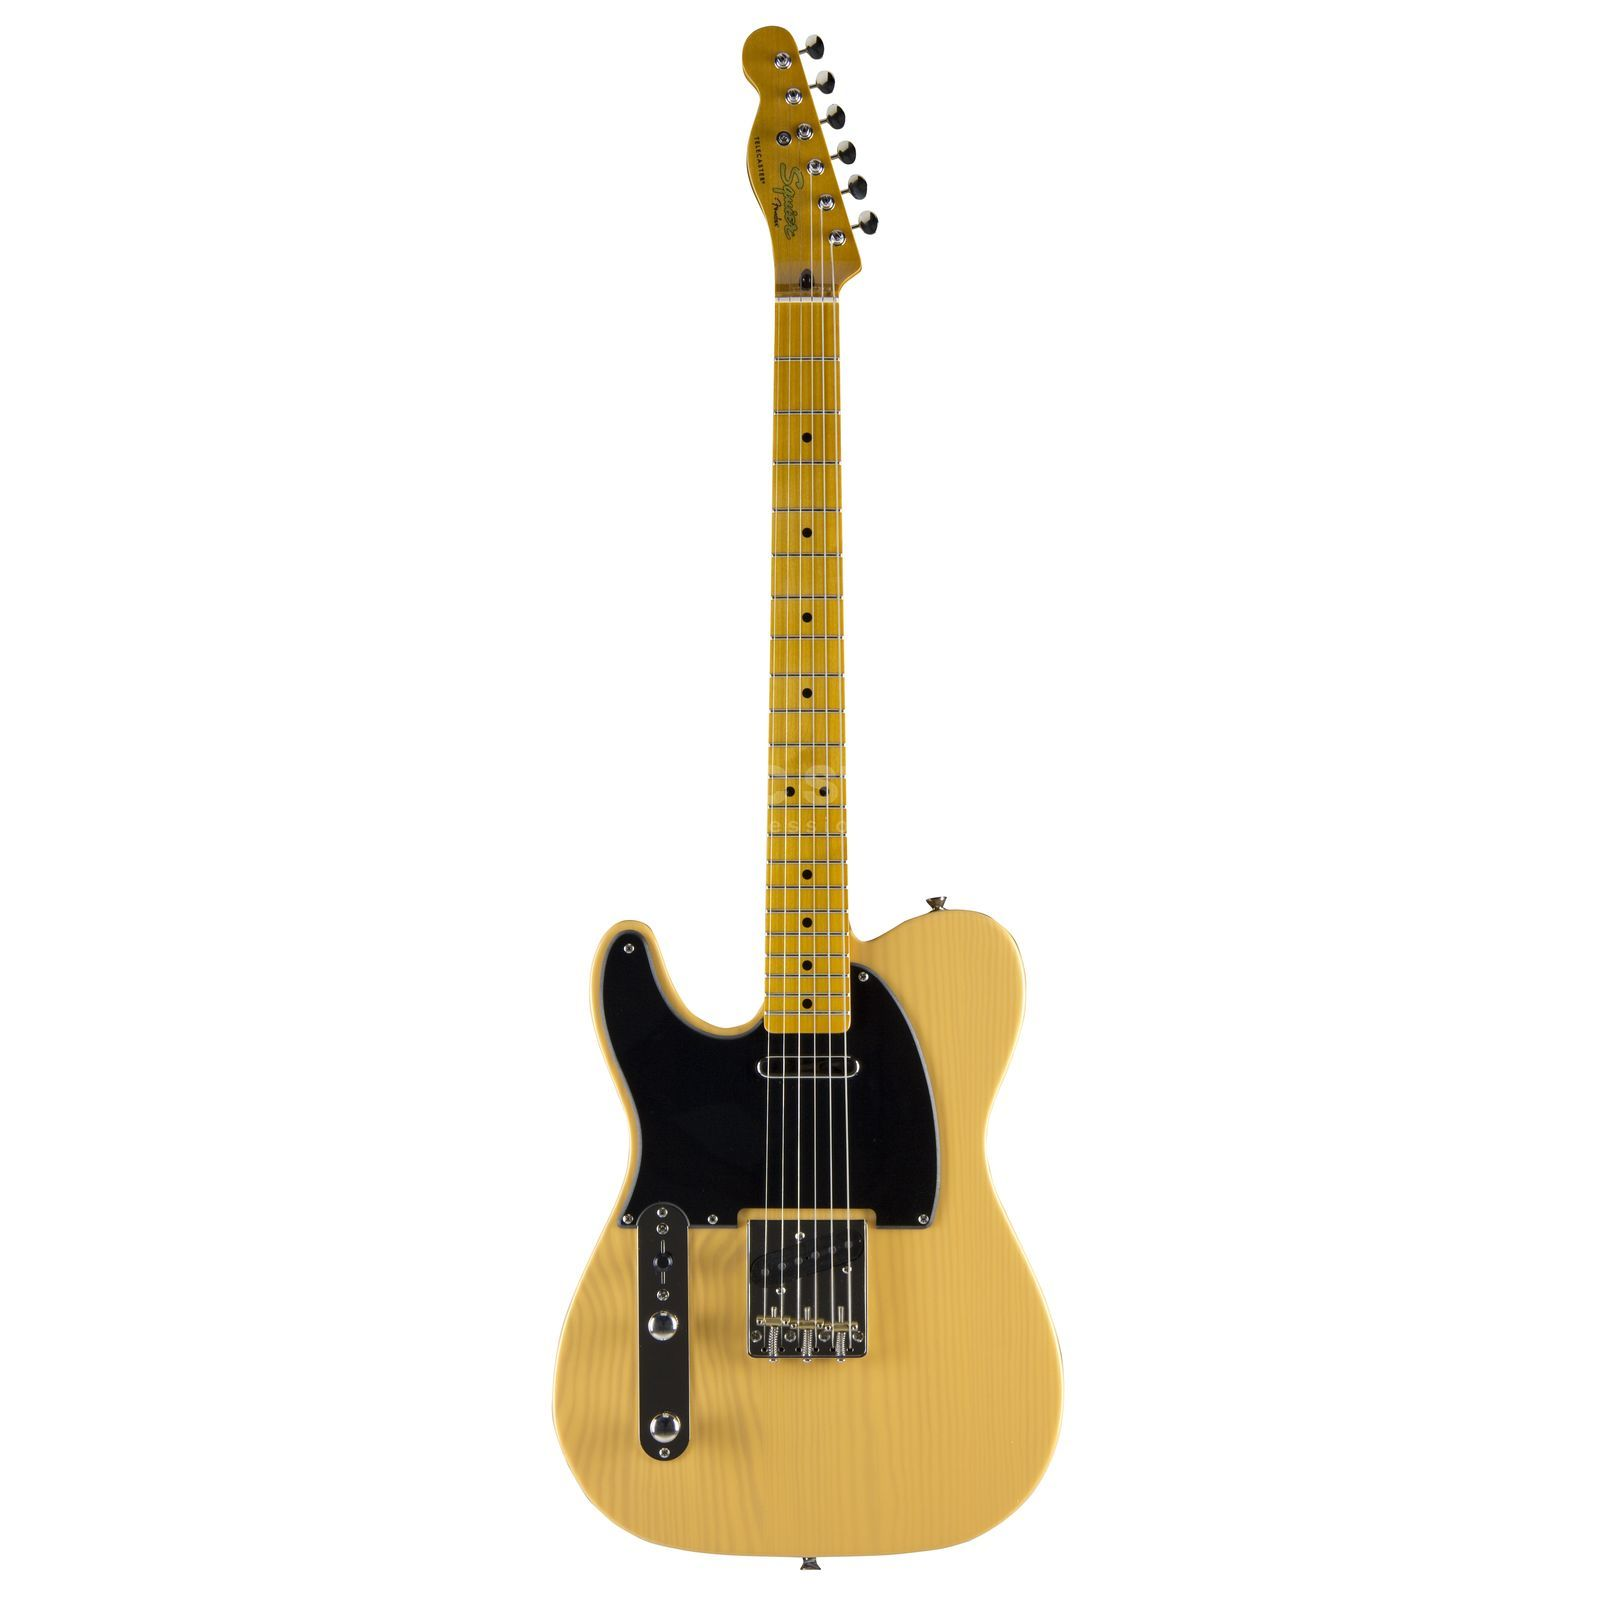 Squier by Fender Classic Vibe Telecaster '50 MN Butterscotch Blonde Lefthand Produktbild